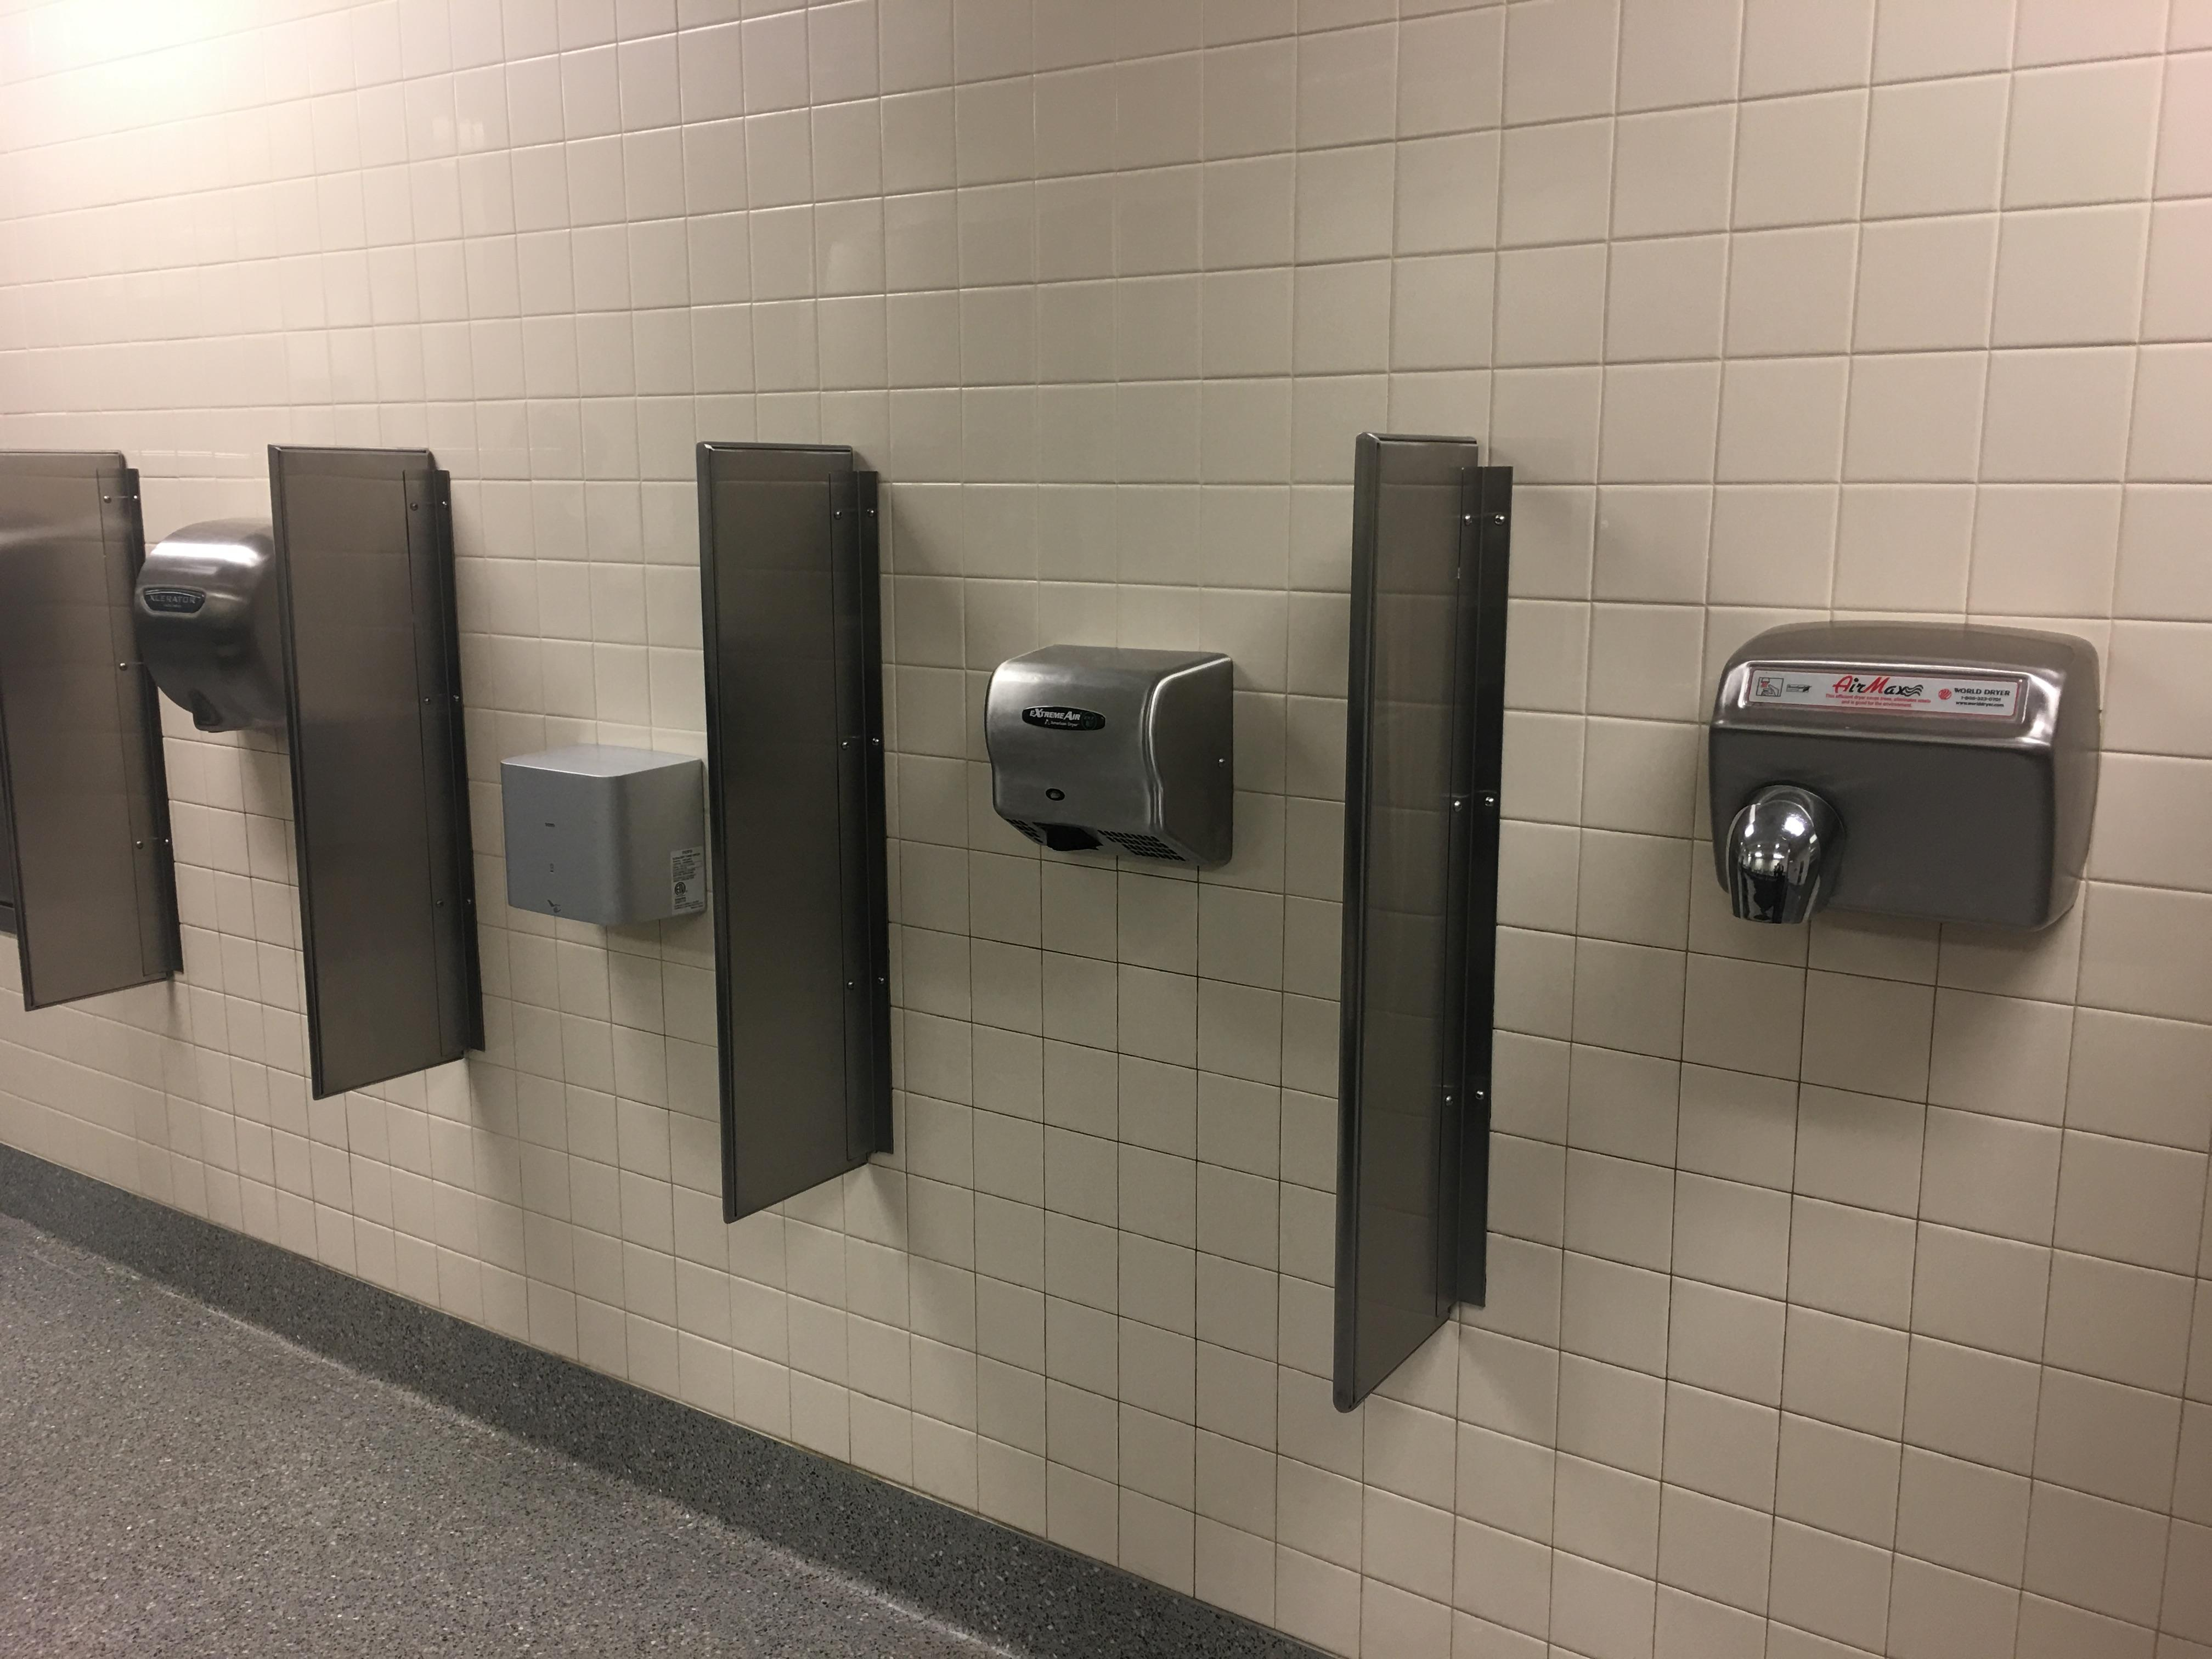 Bathroom in the Portland airport has 4 different types of